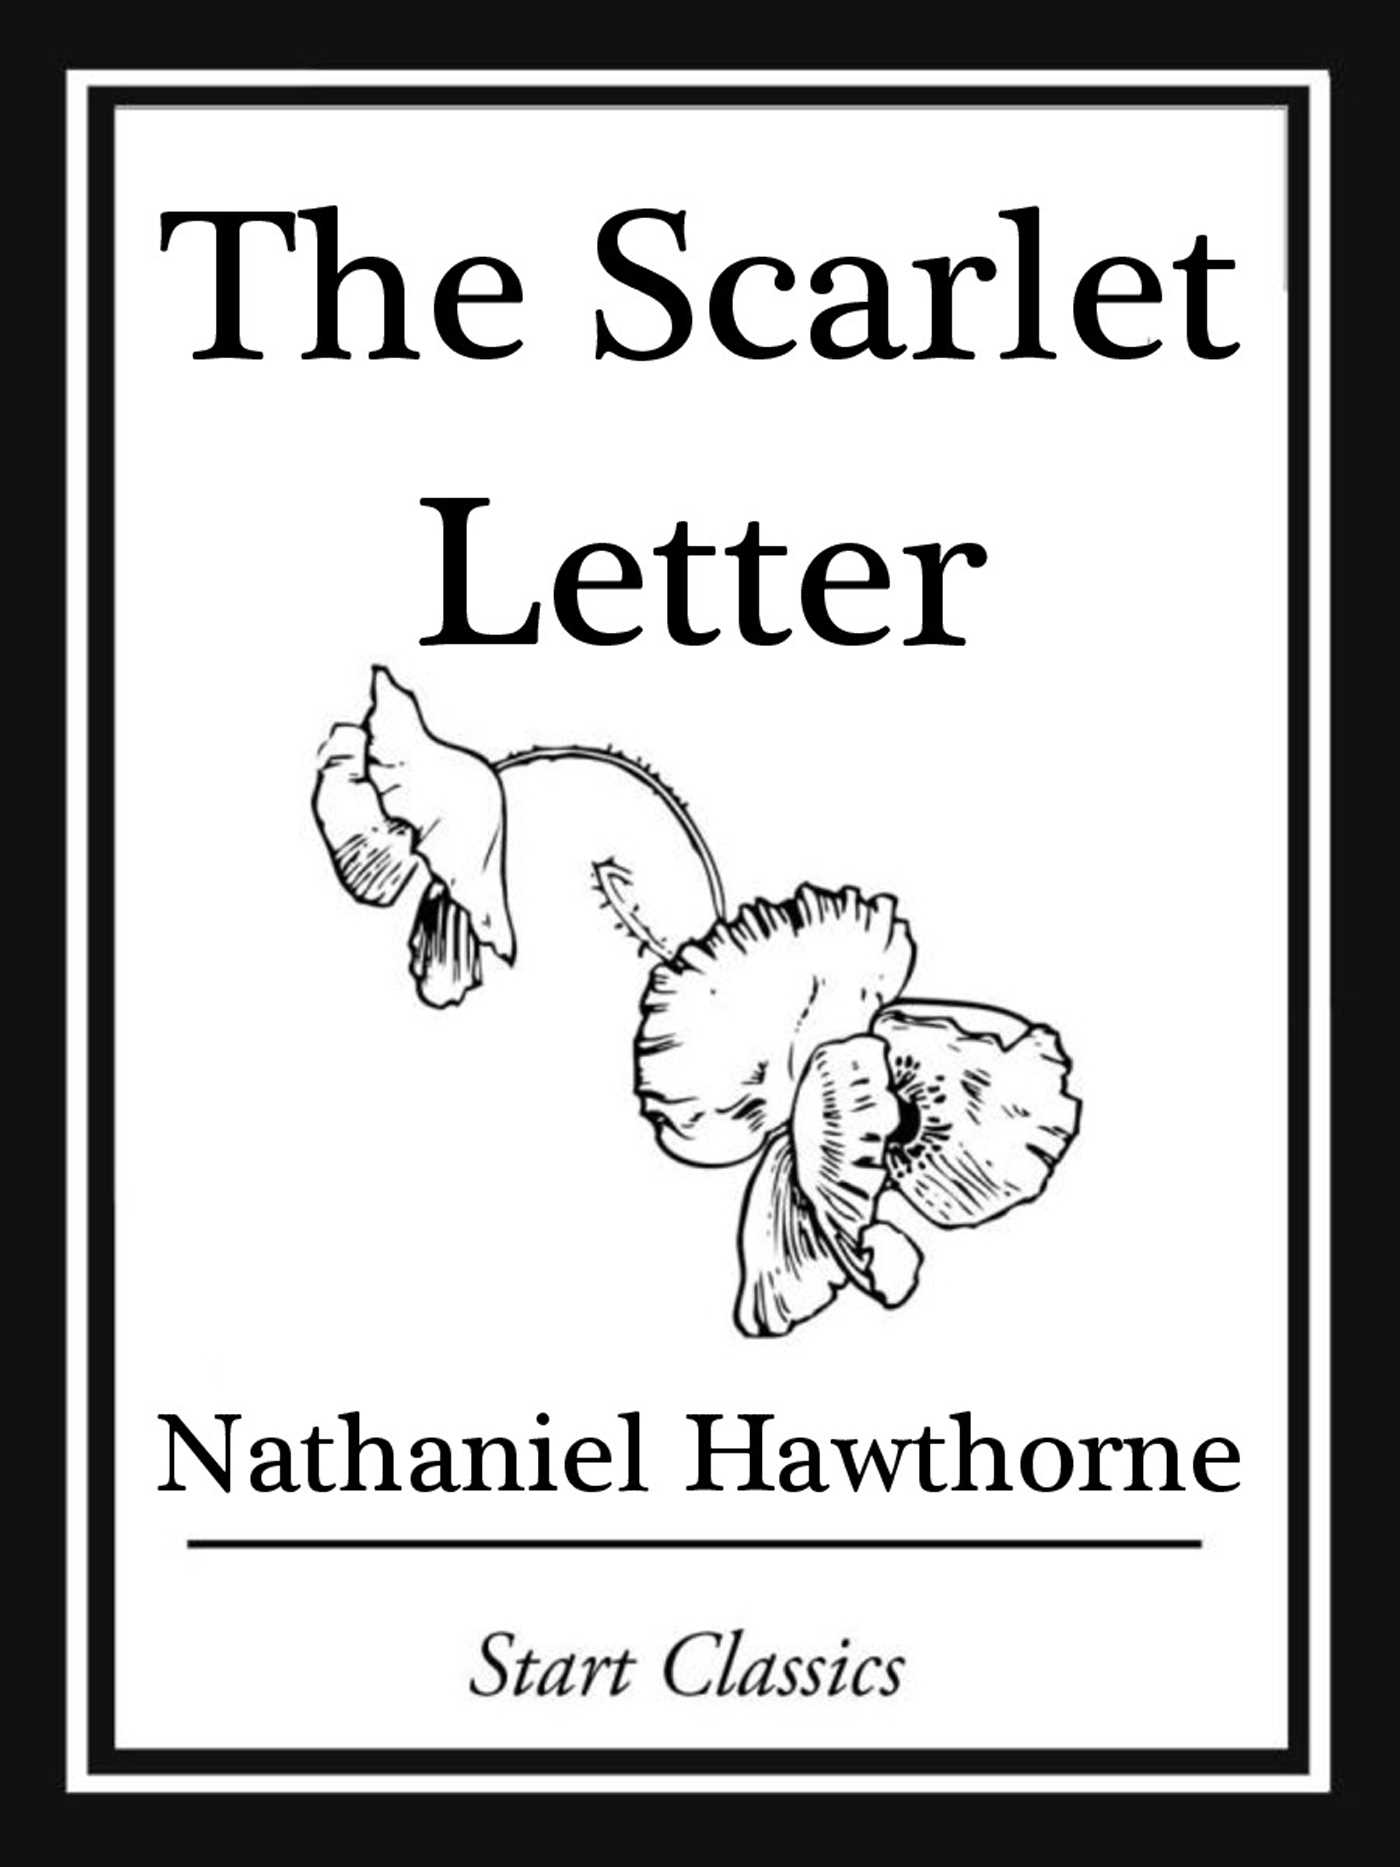 the gloomy and crude characteristics of society in the scarlet letter a novel by nathaniel hawthorne Nathaniel hawthorne, the scarlet letter (1850) back hawthorne's novel is set in the early days of america—when settlers were first beginning to make their homes in boston or, for that matter, in puritan society you do get nifty white bonnets when you hang with the puritans, though.